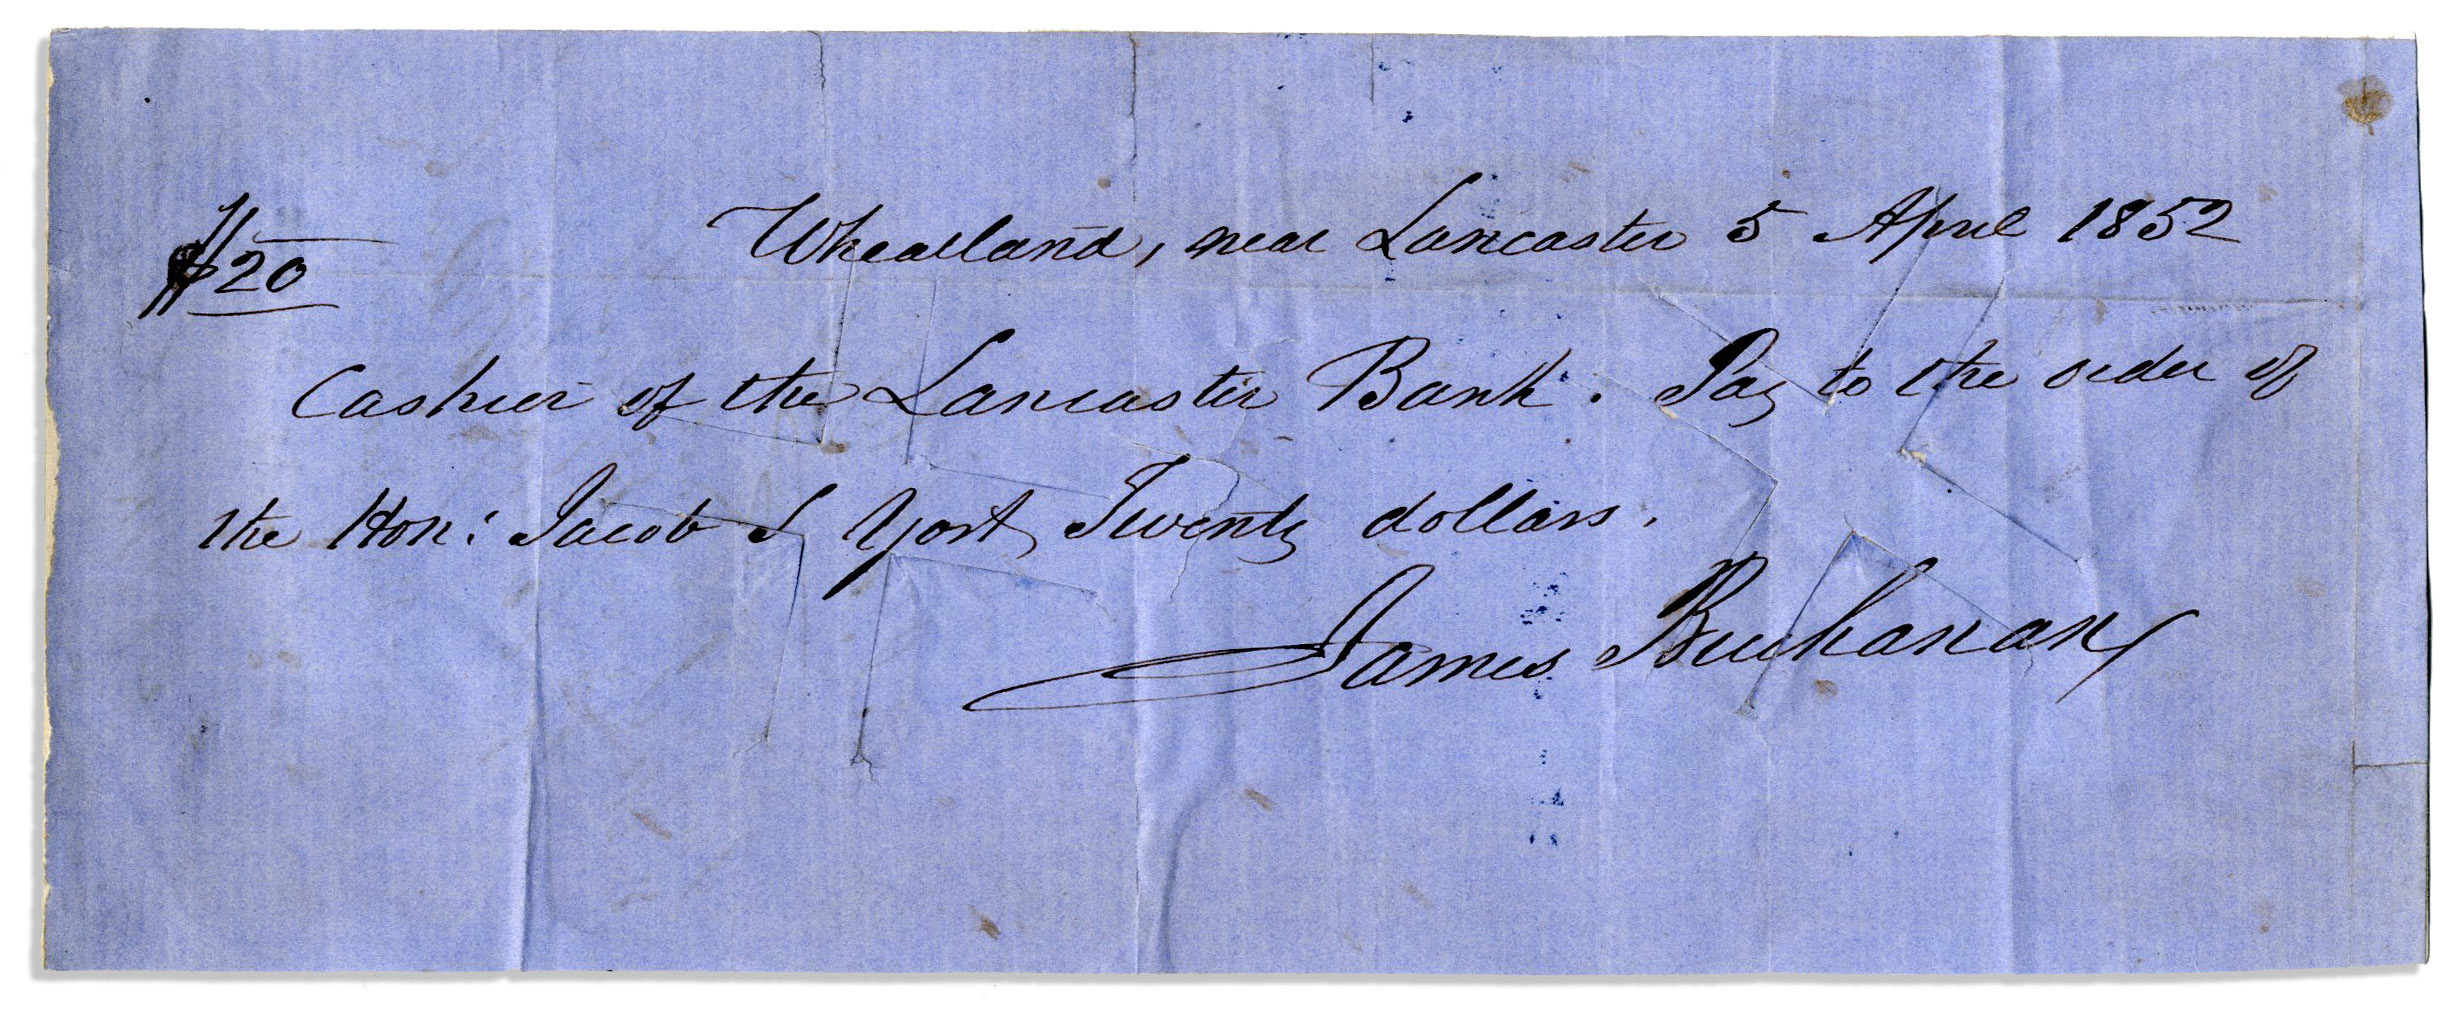 President Signed Checks James Buchanan 1852 Manuscript Check Signed